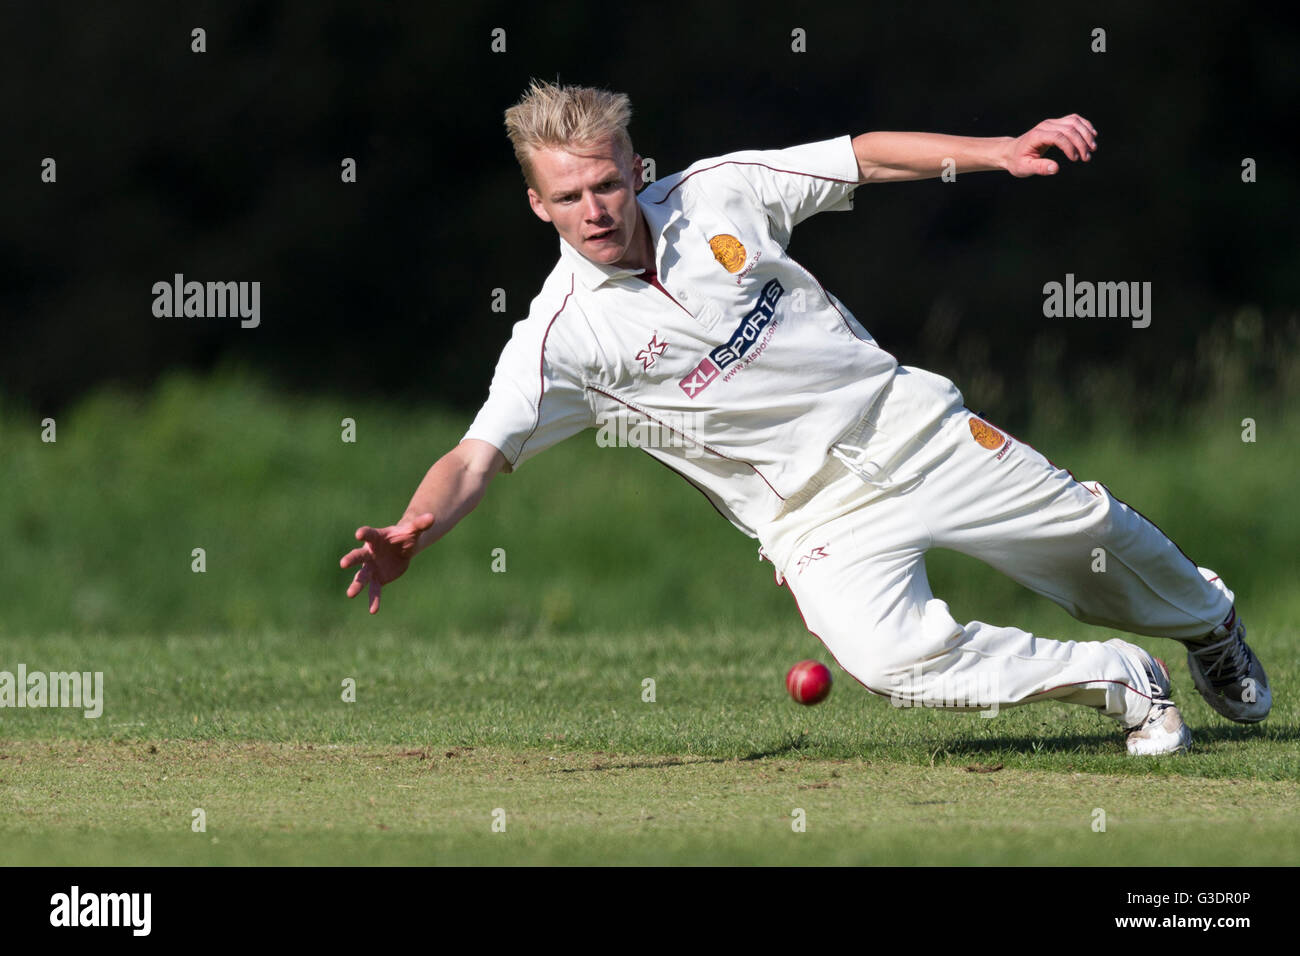 Witchampton CC 1st XI versus Marnhull CC 1st XI ,  Ashley Young of Marnhull diving to stop ball. - Stock Image